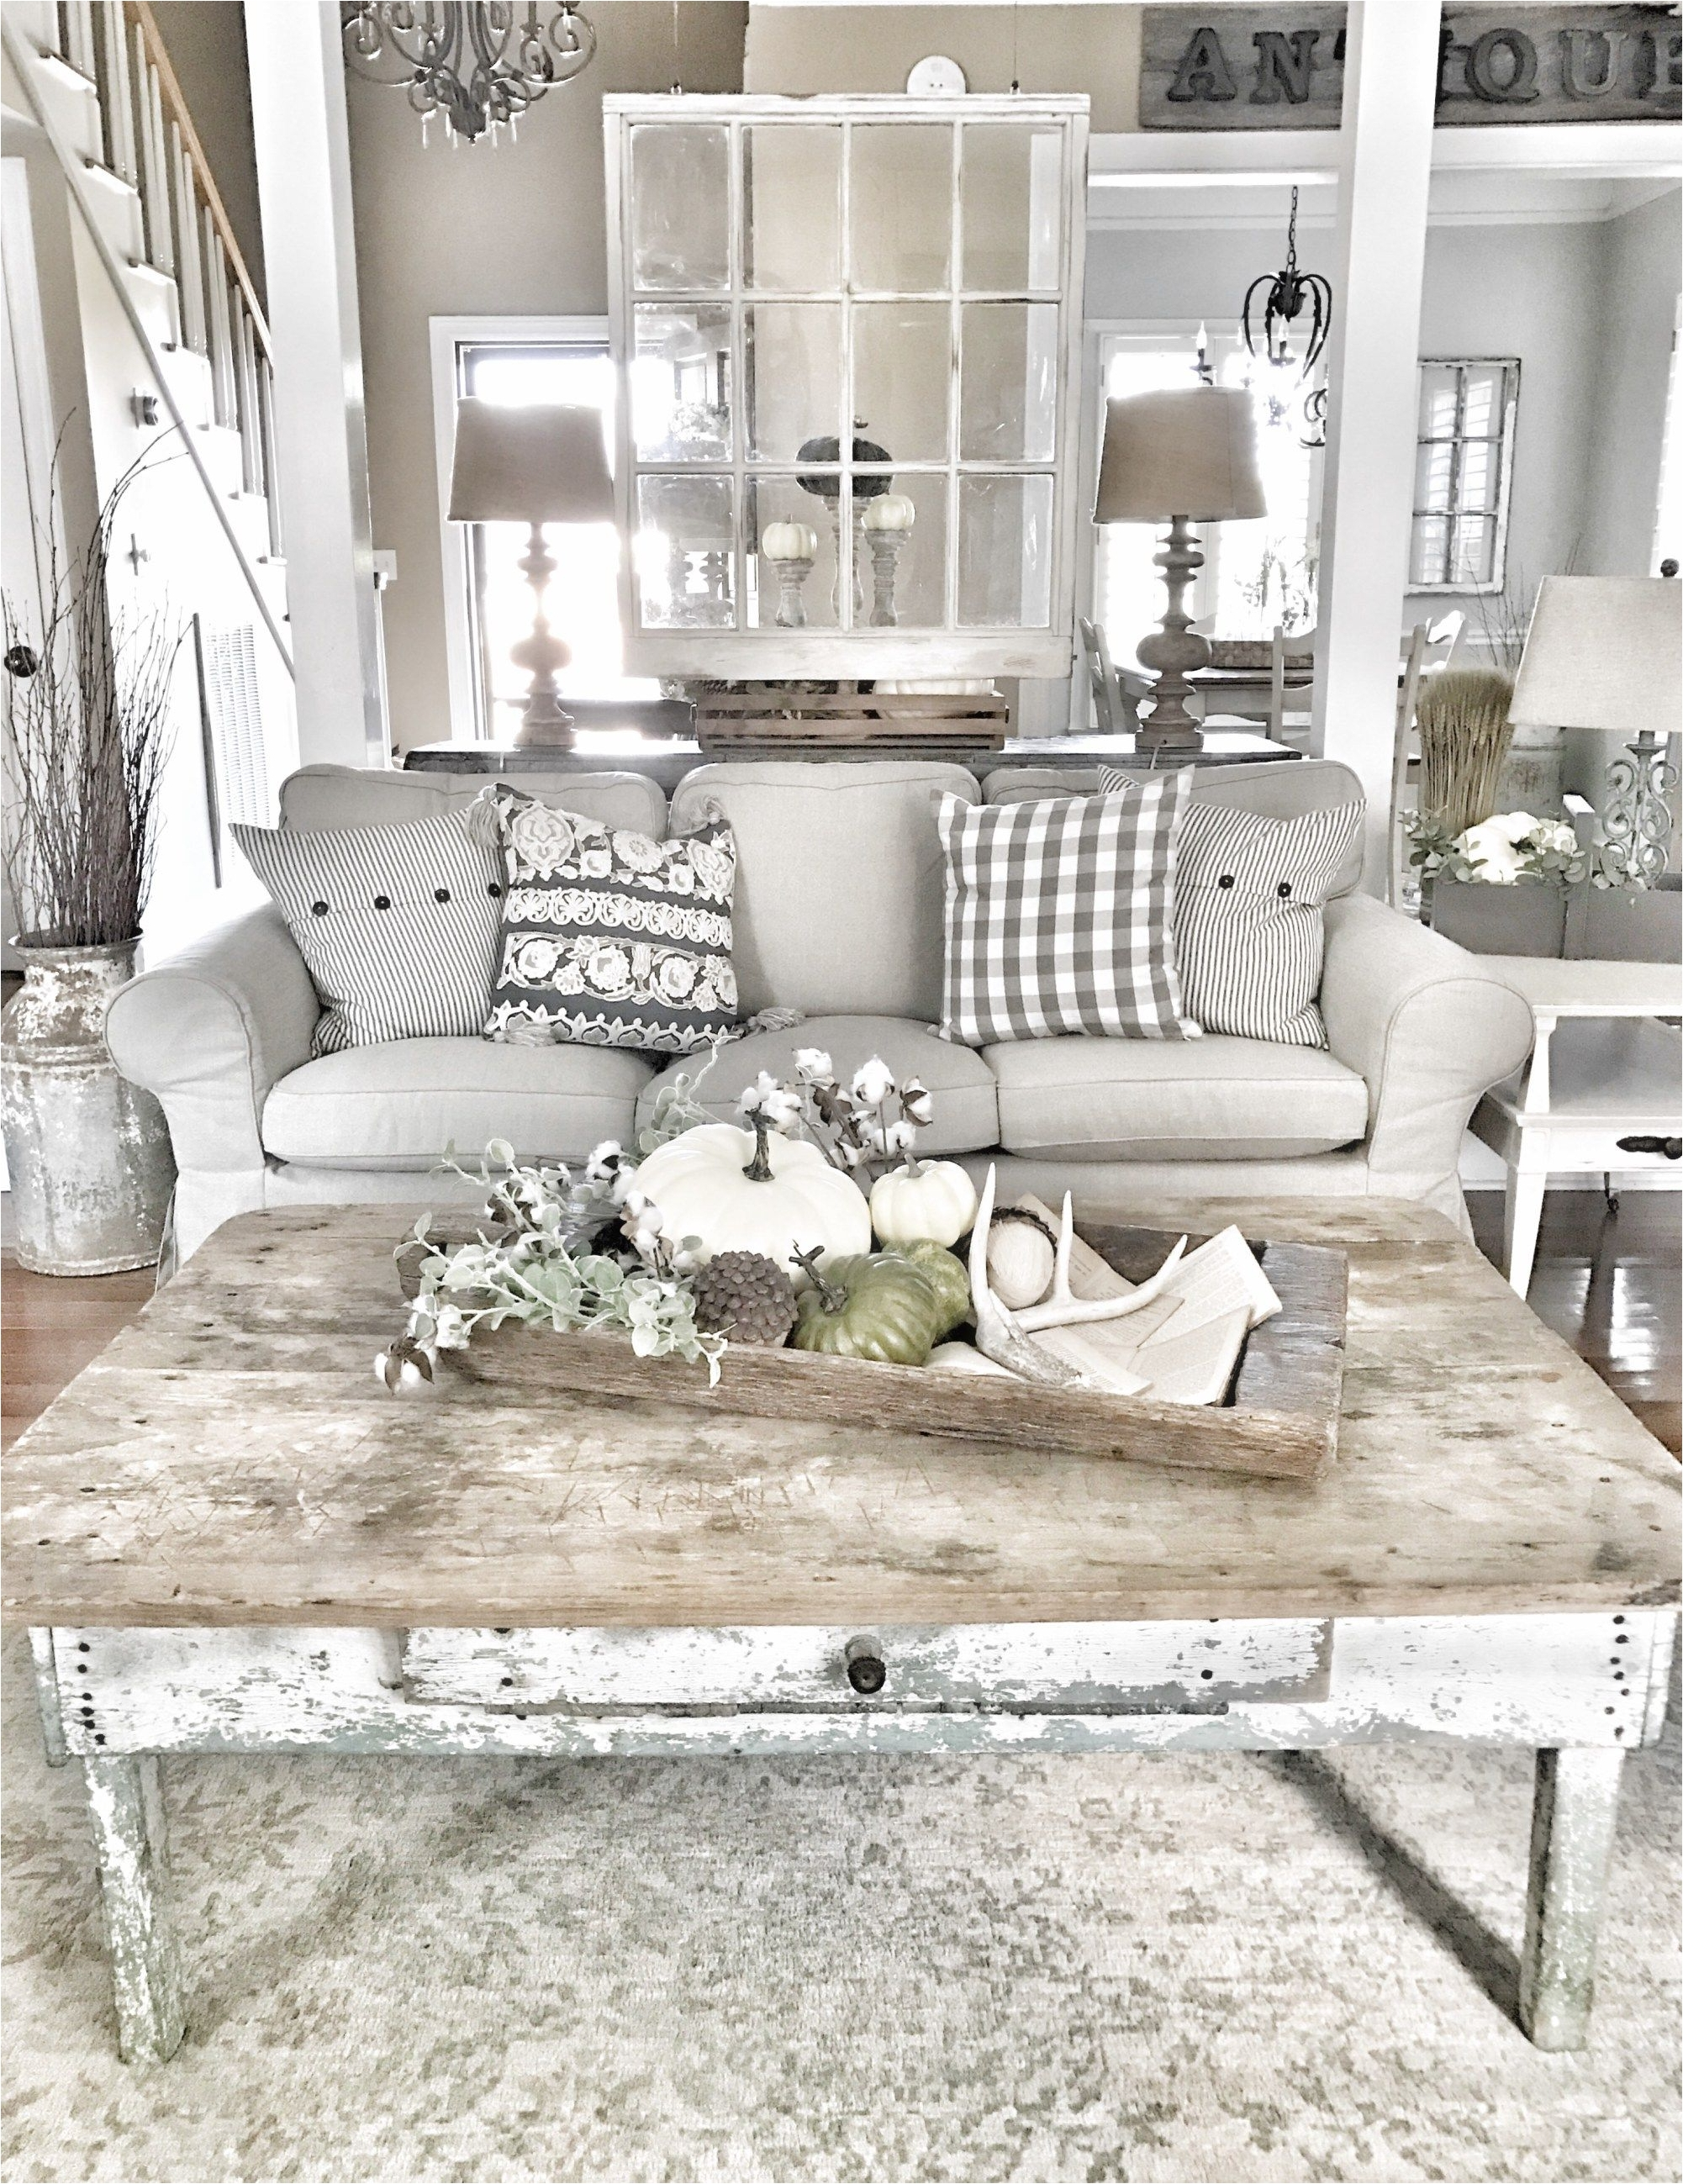 Coffee Table for Shabby-chic Style Minimalist Home Inspiration